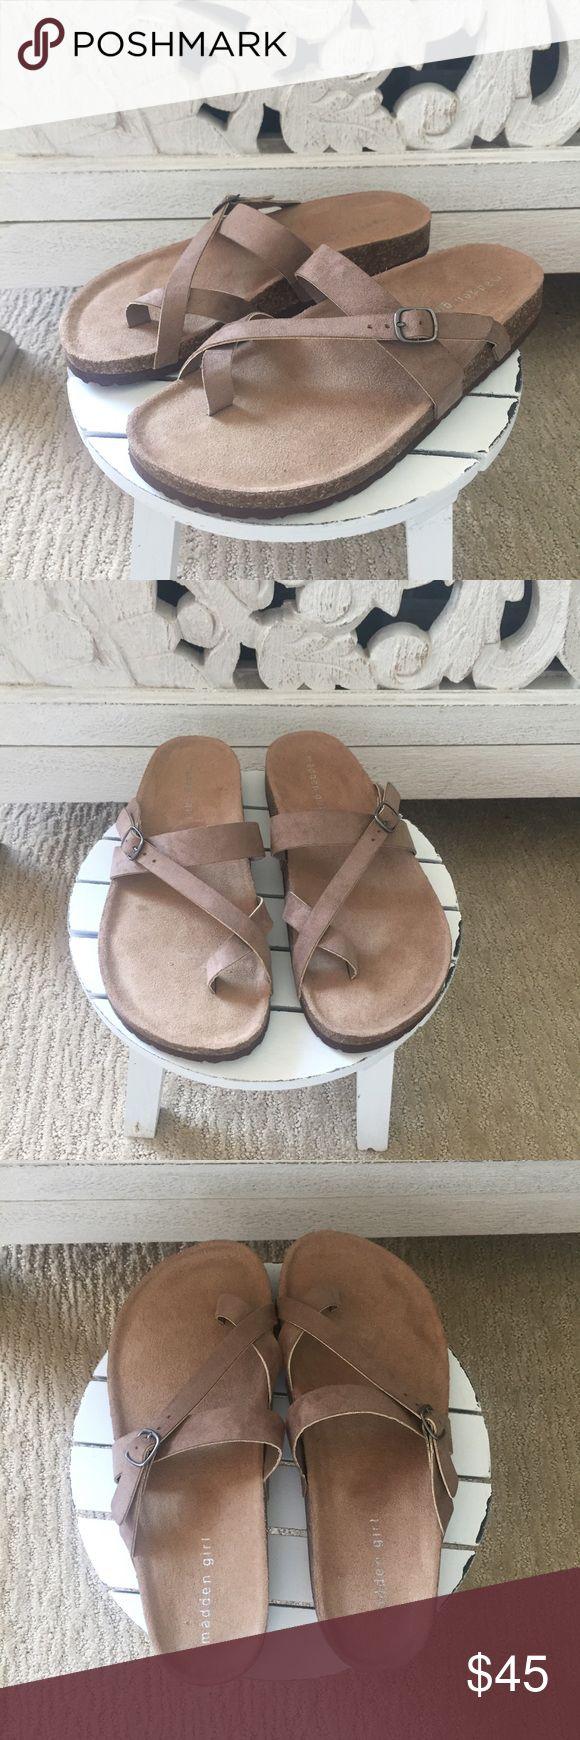 Steve Madden Birkenstocks Steve Madden Birkenstocks. Madden Girl brand. Perfect for a casual summer look. Cute & comfy! BRAND NEW, NEVER WORN. Madden Girl Shoes Sandals